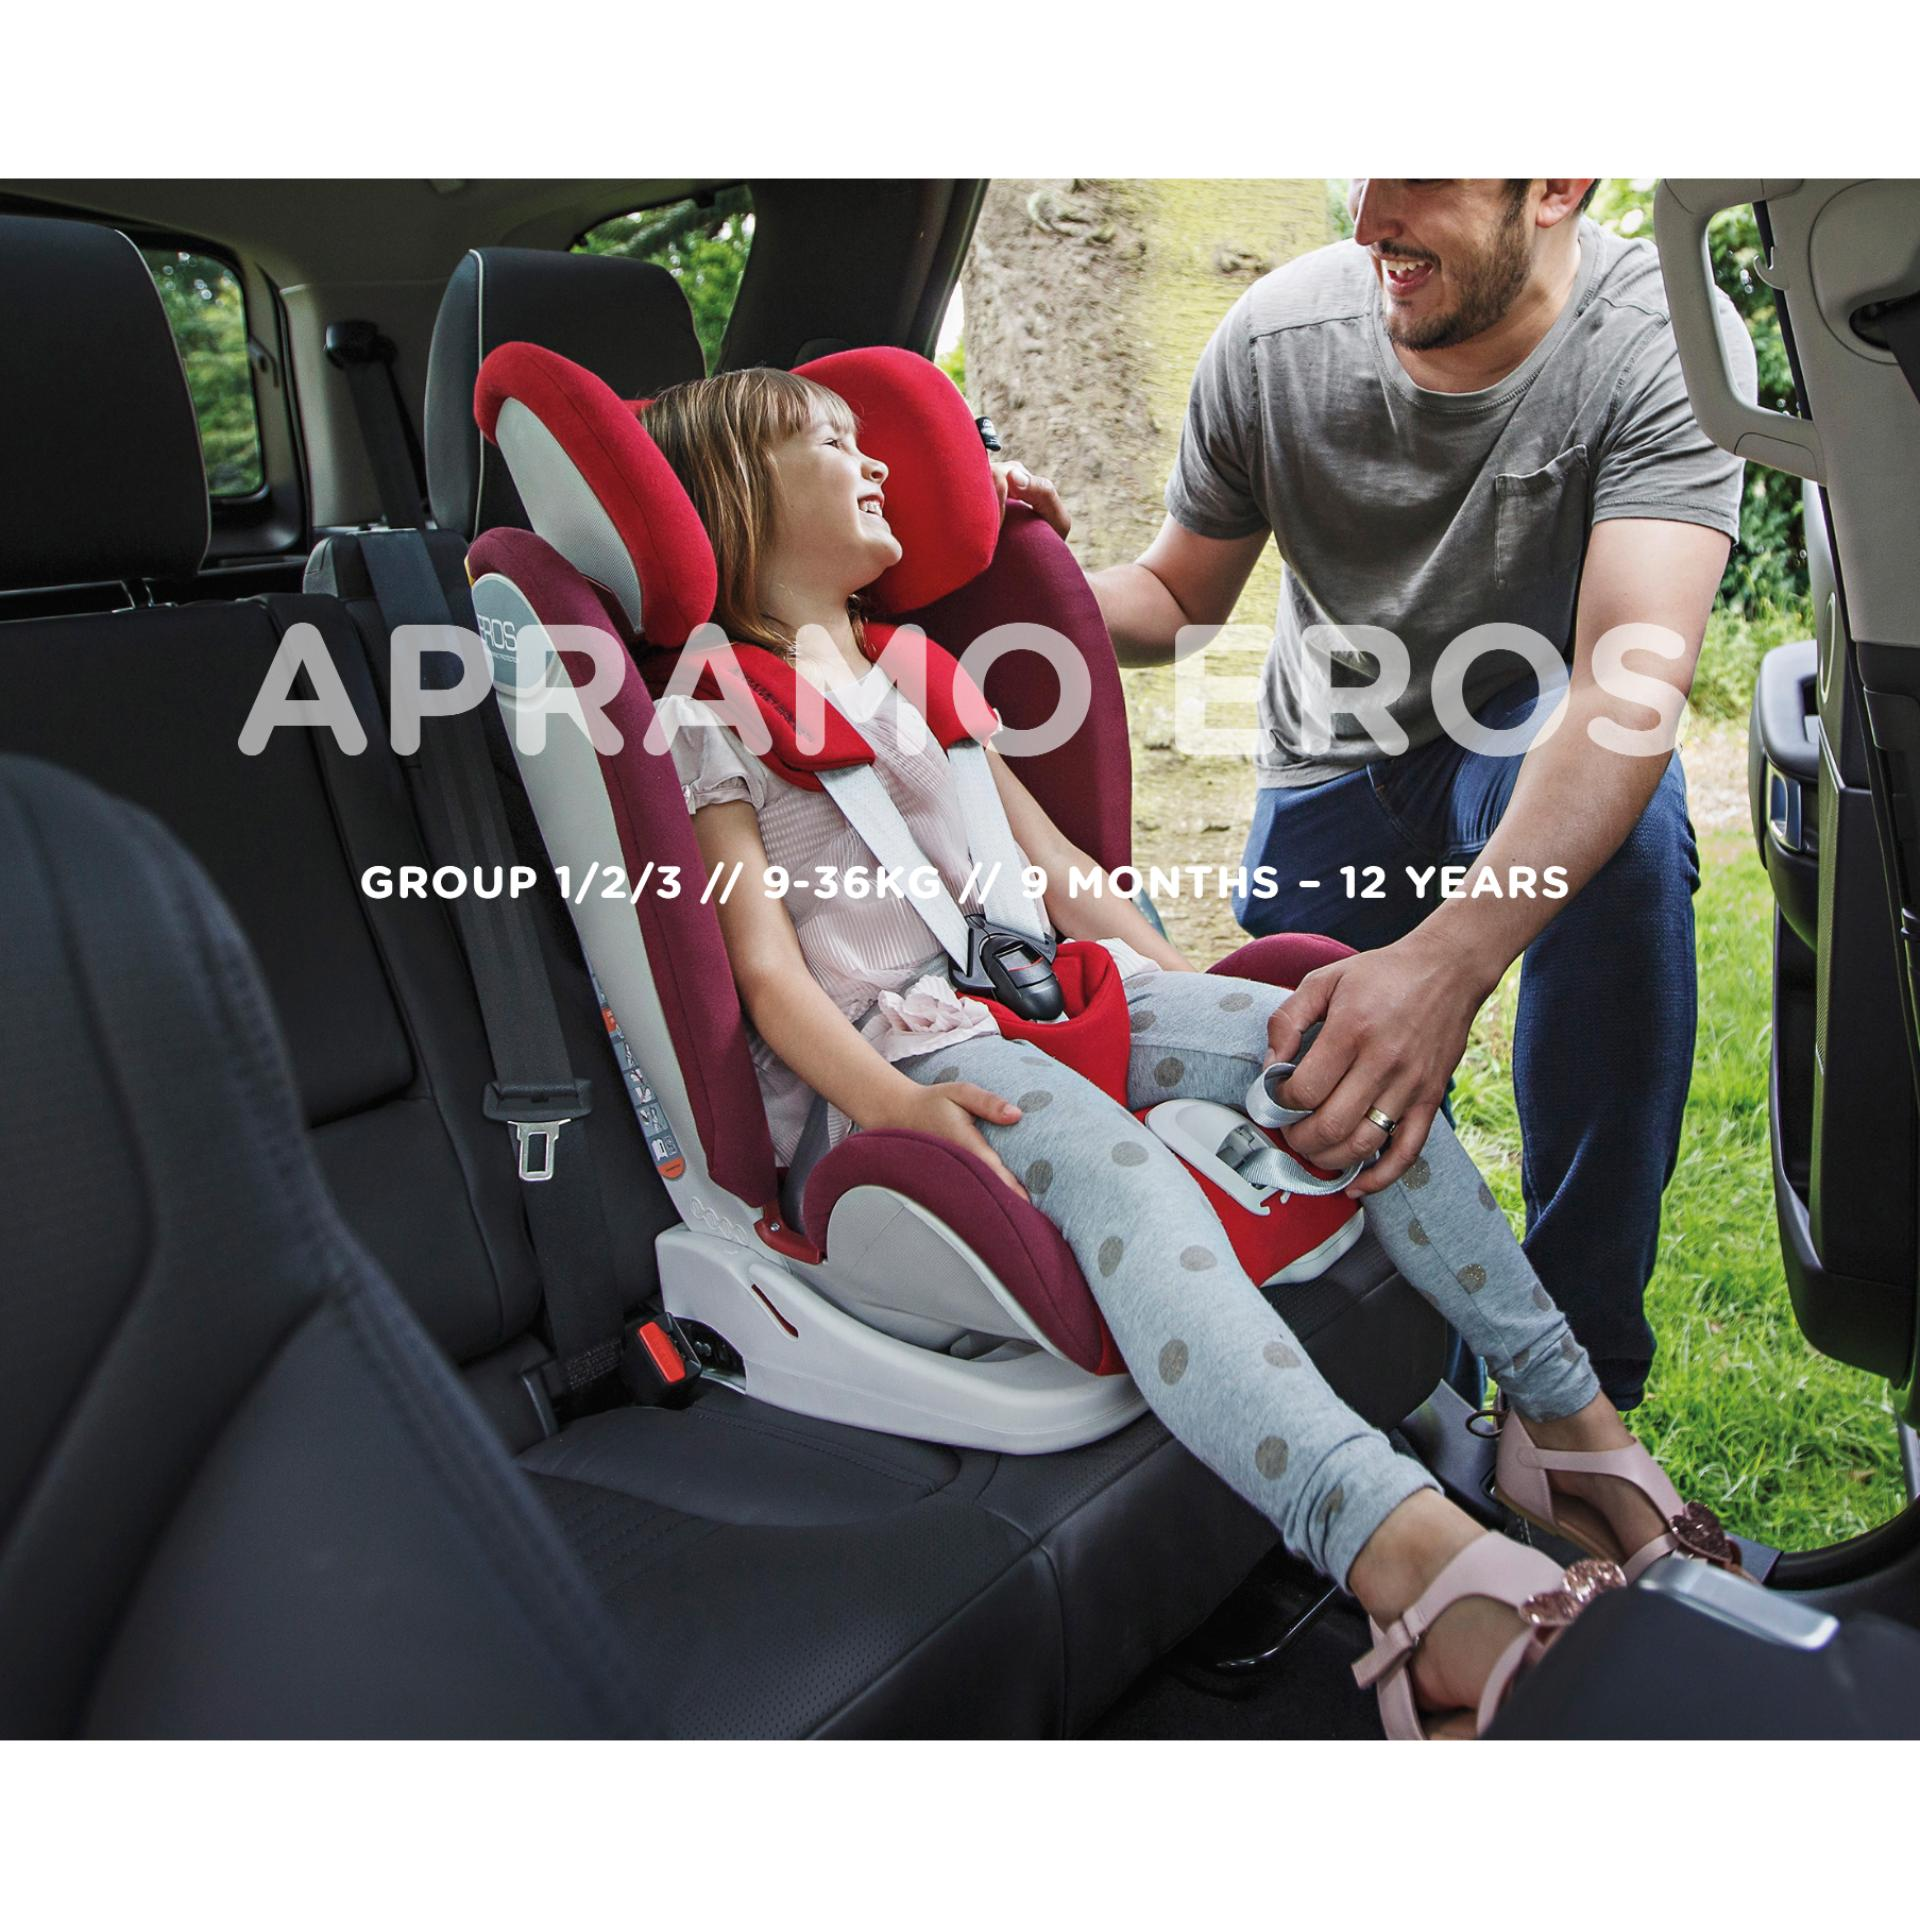 Apramo Eros Carseat *ADDITIONAL FREE Gift for EARLY BIRD SPECIAL!!